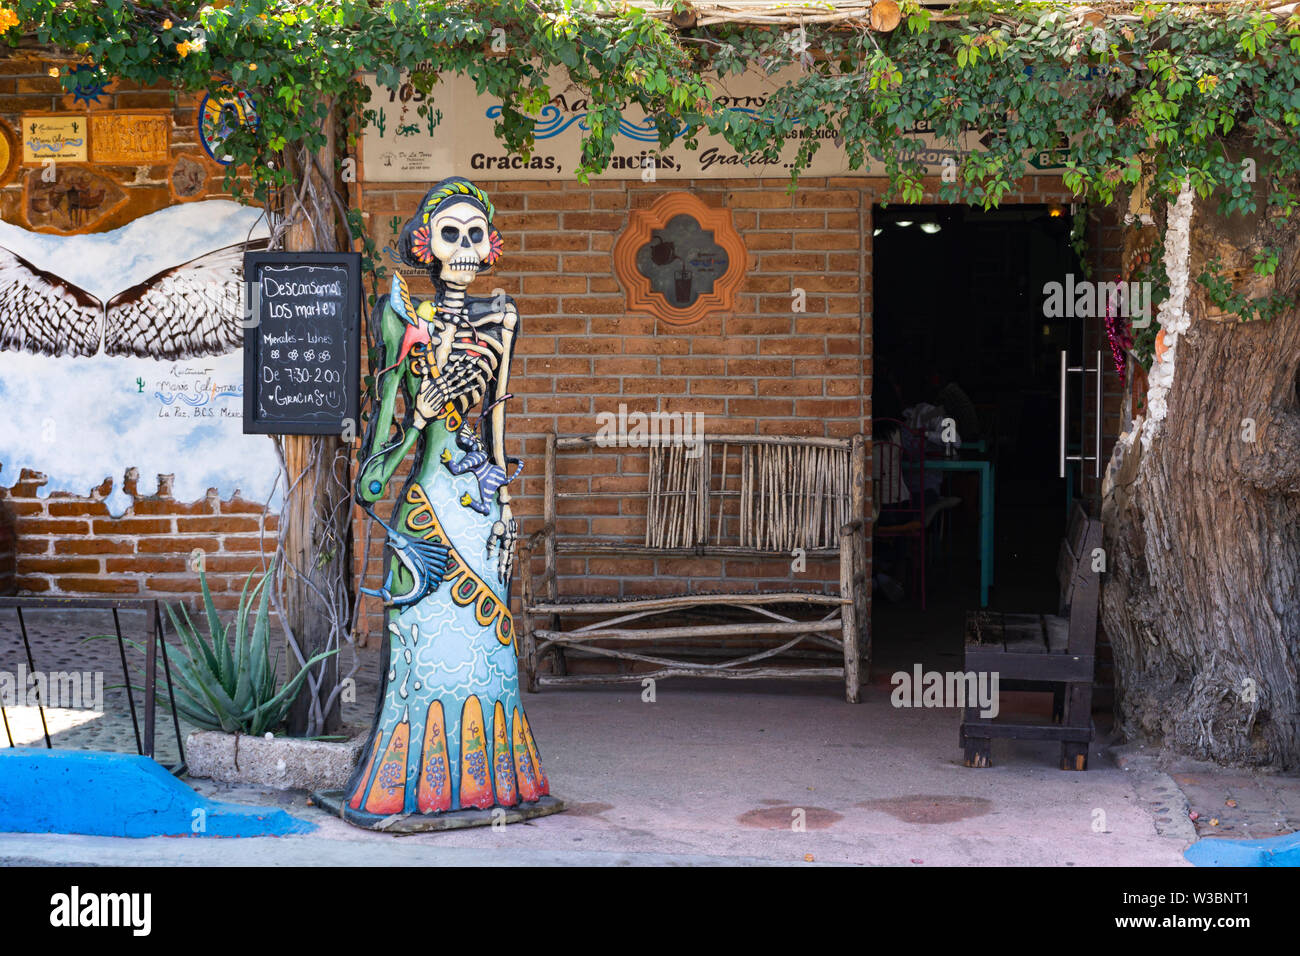 a colorful life sized doll ,representing the mexican dias del los muertos ,is standing in front of a door entrance - Stock Image